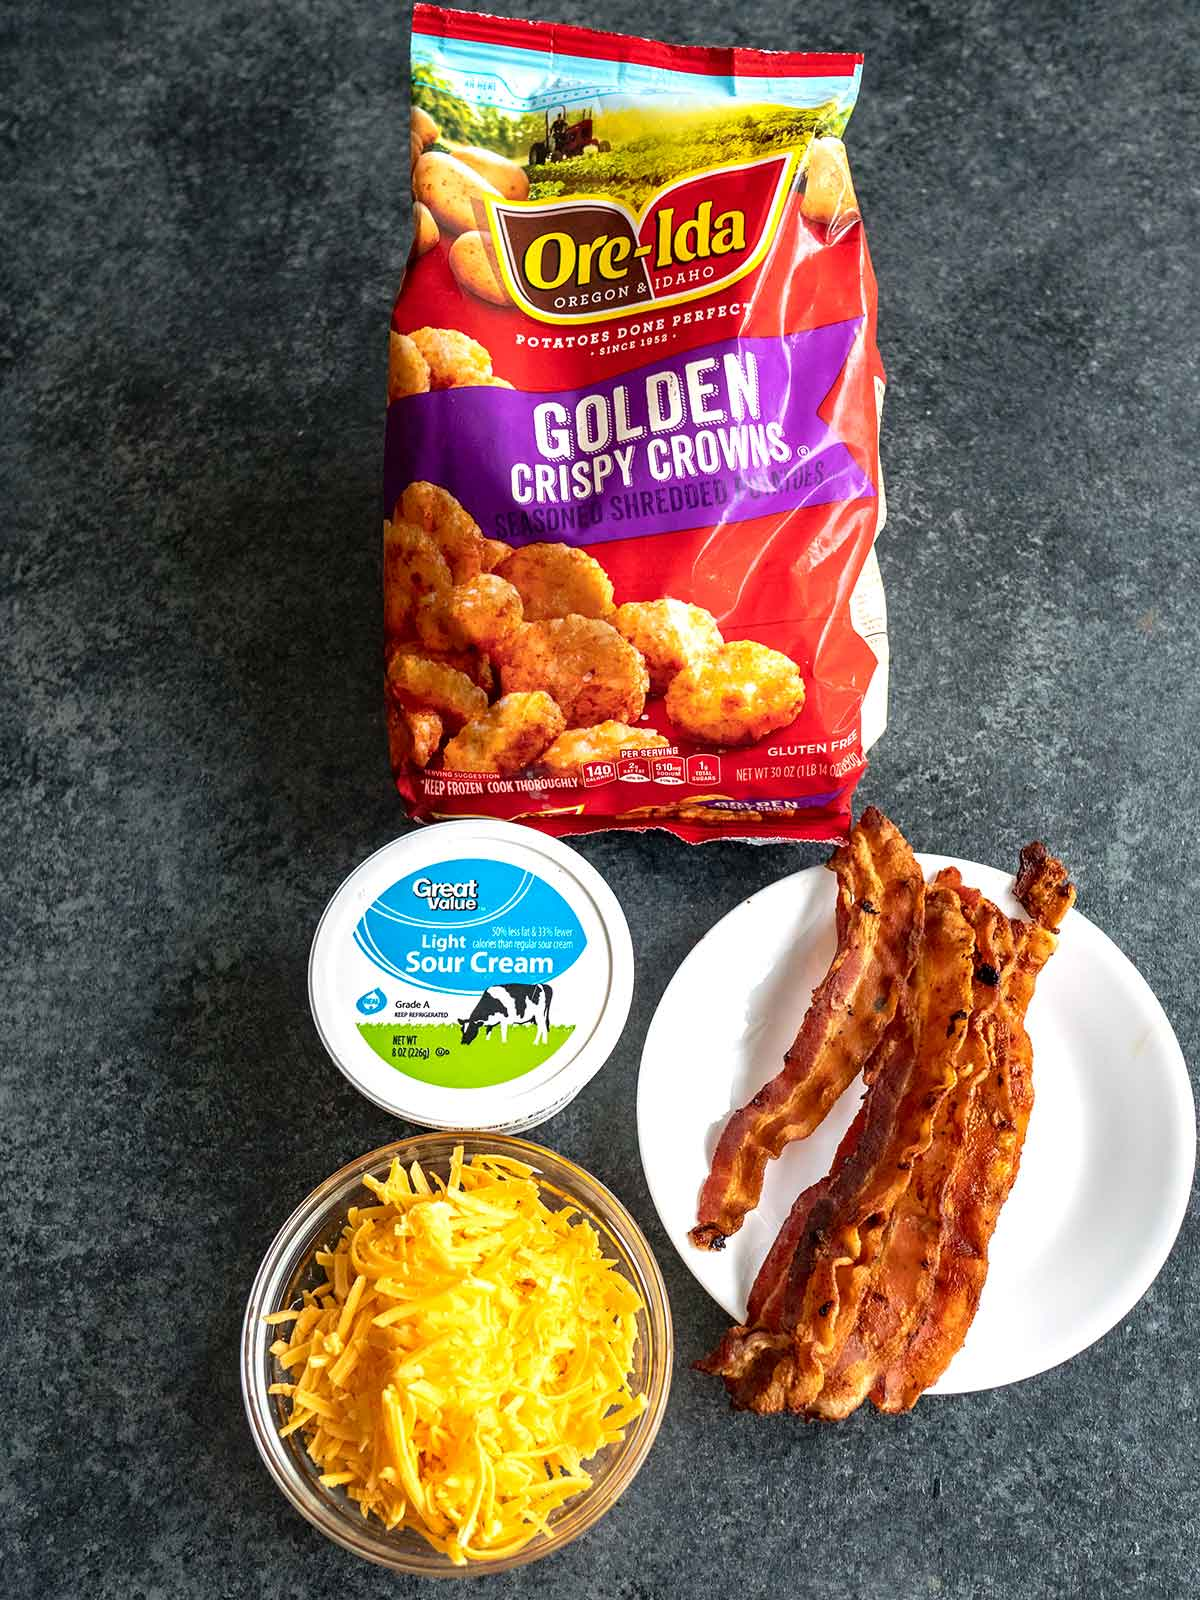 Ingredients for Loaded Crispy Crown Cups